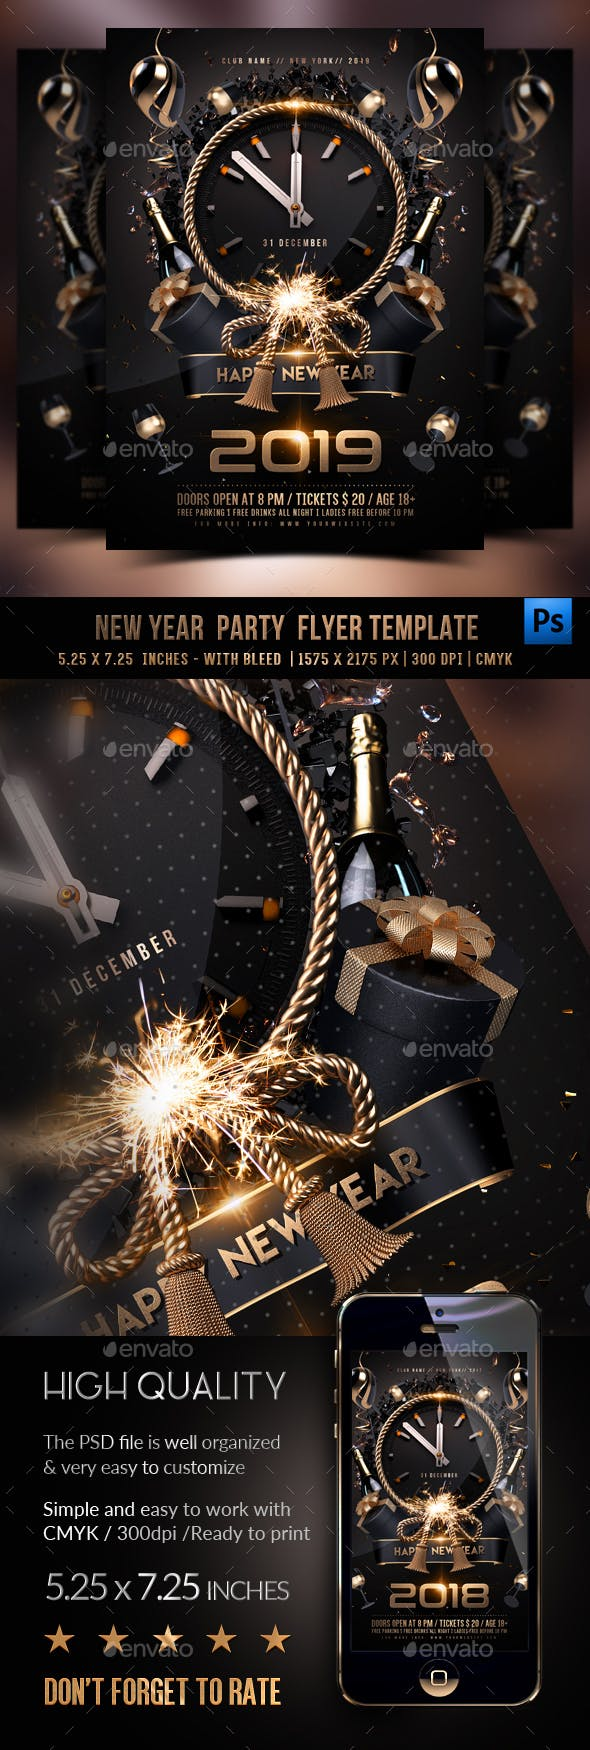 New Year Party Flyer by Rembassio | GraphicRiver